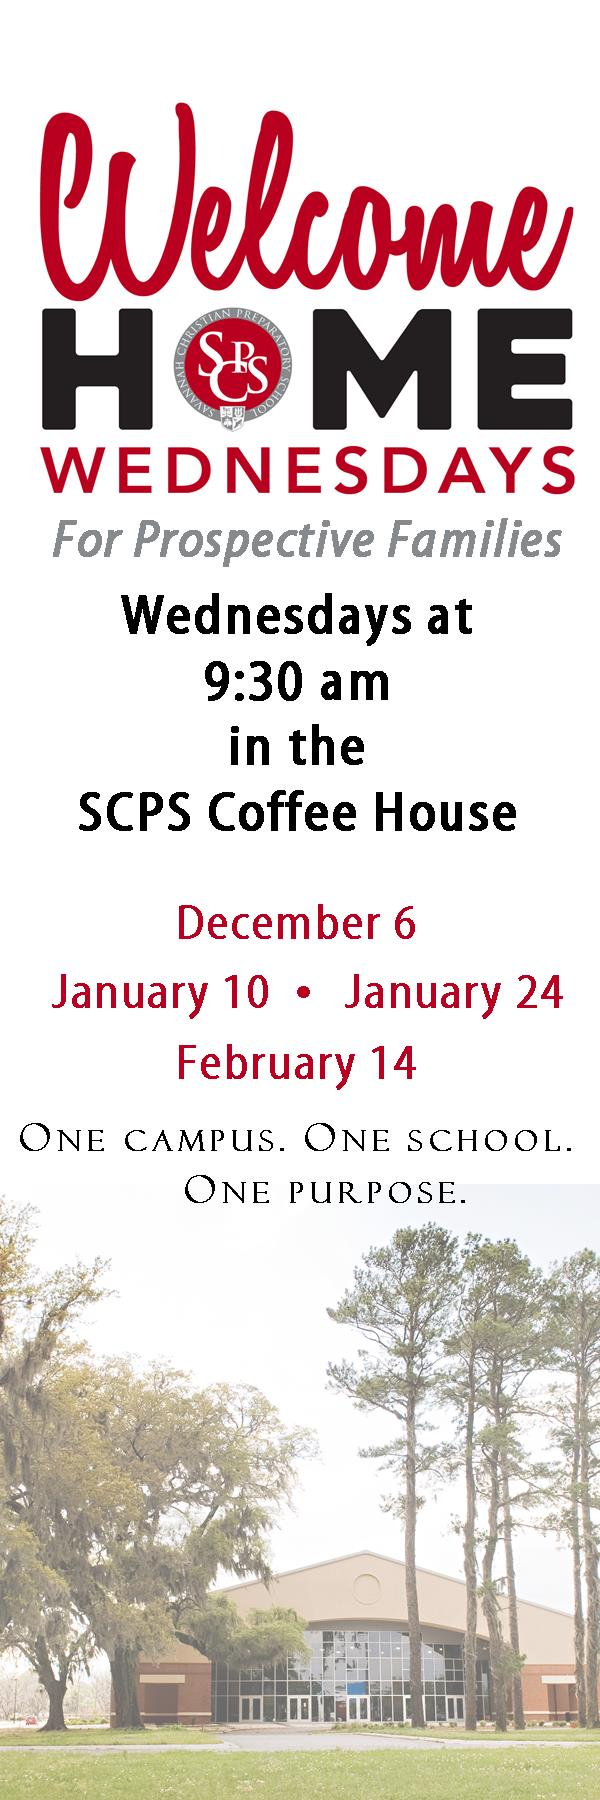 Savannah schools Savannah Christian Preparatory School private education SCPS Welcome Wednesdays Open House